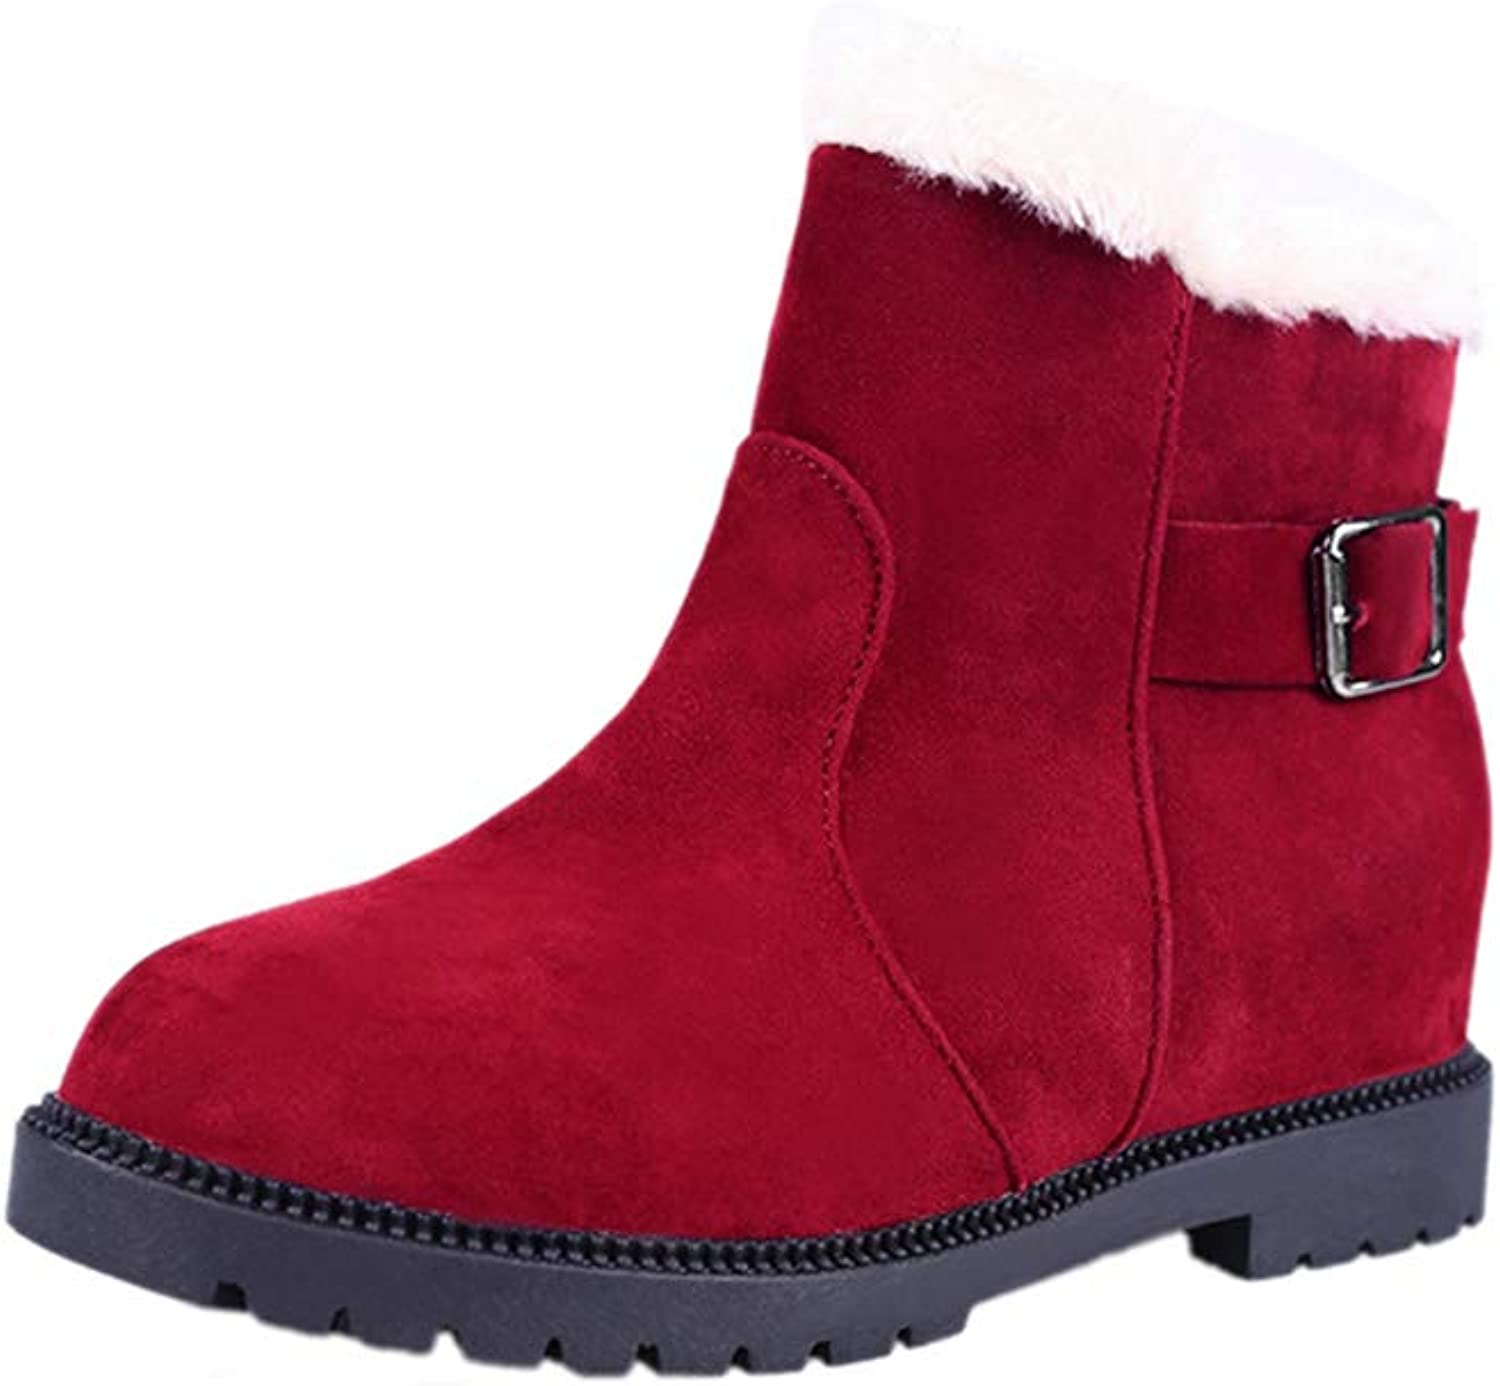 T-JULY Women's Fashion Buckle Ankle Slip-on Wedge Warm Snow Boots Casual Breathable Waterproof Fur Plush Winter shoes